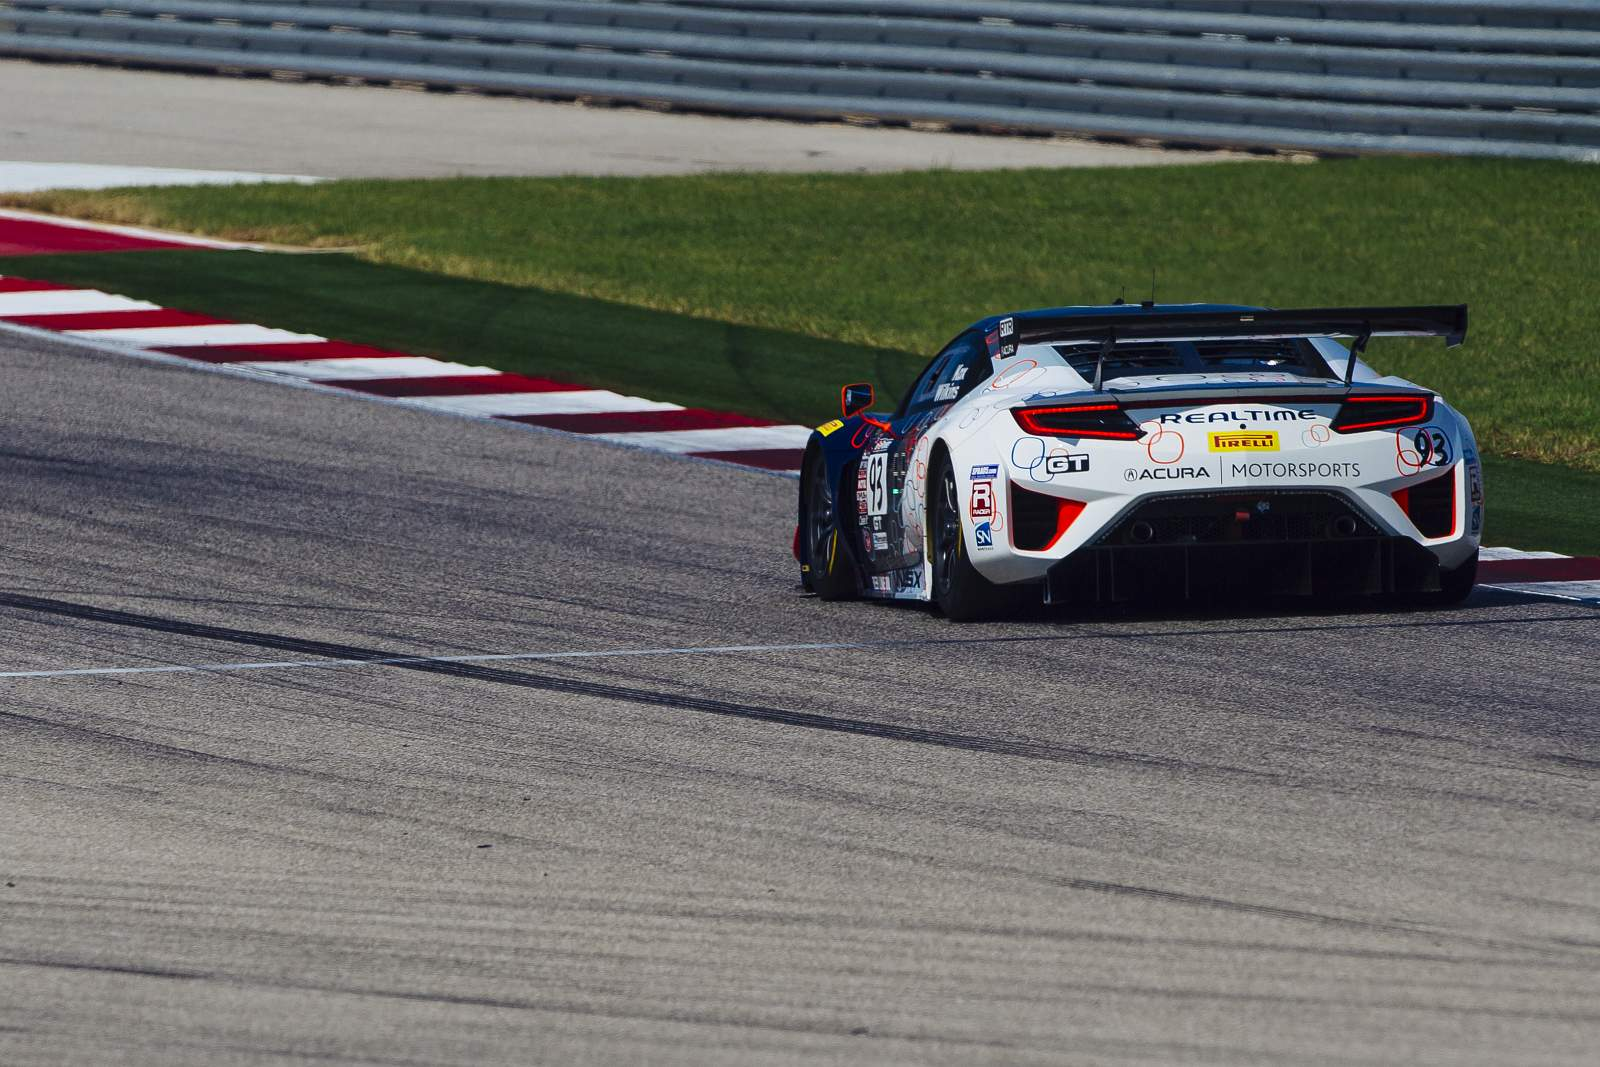 peter-kox-realtime-racing-pirelli-world-challenge-cota--012